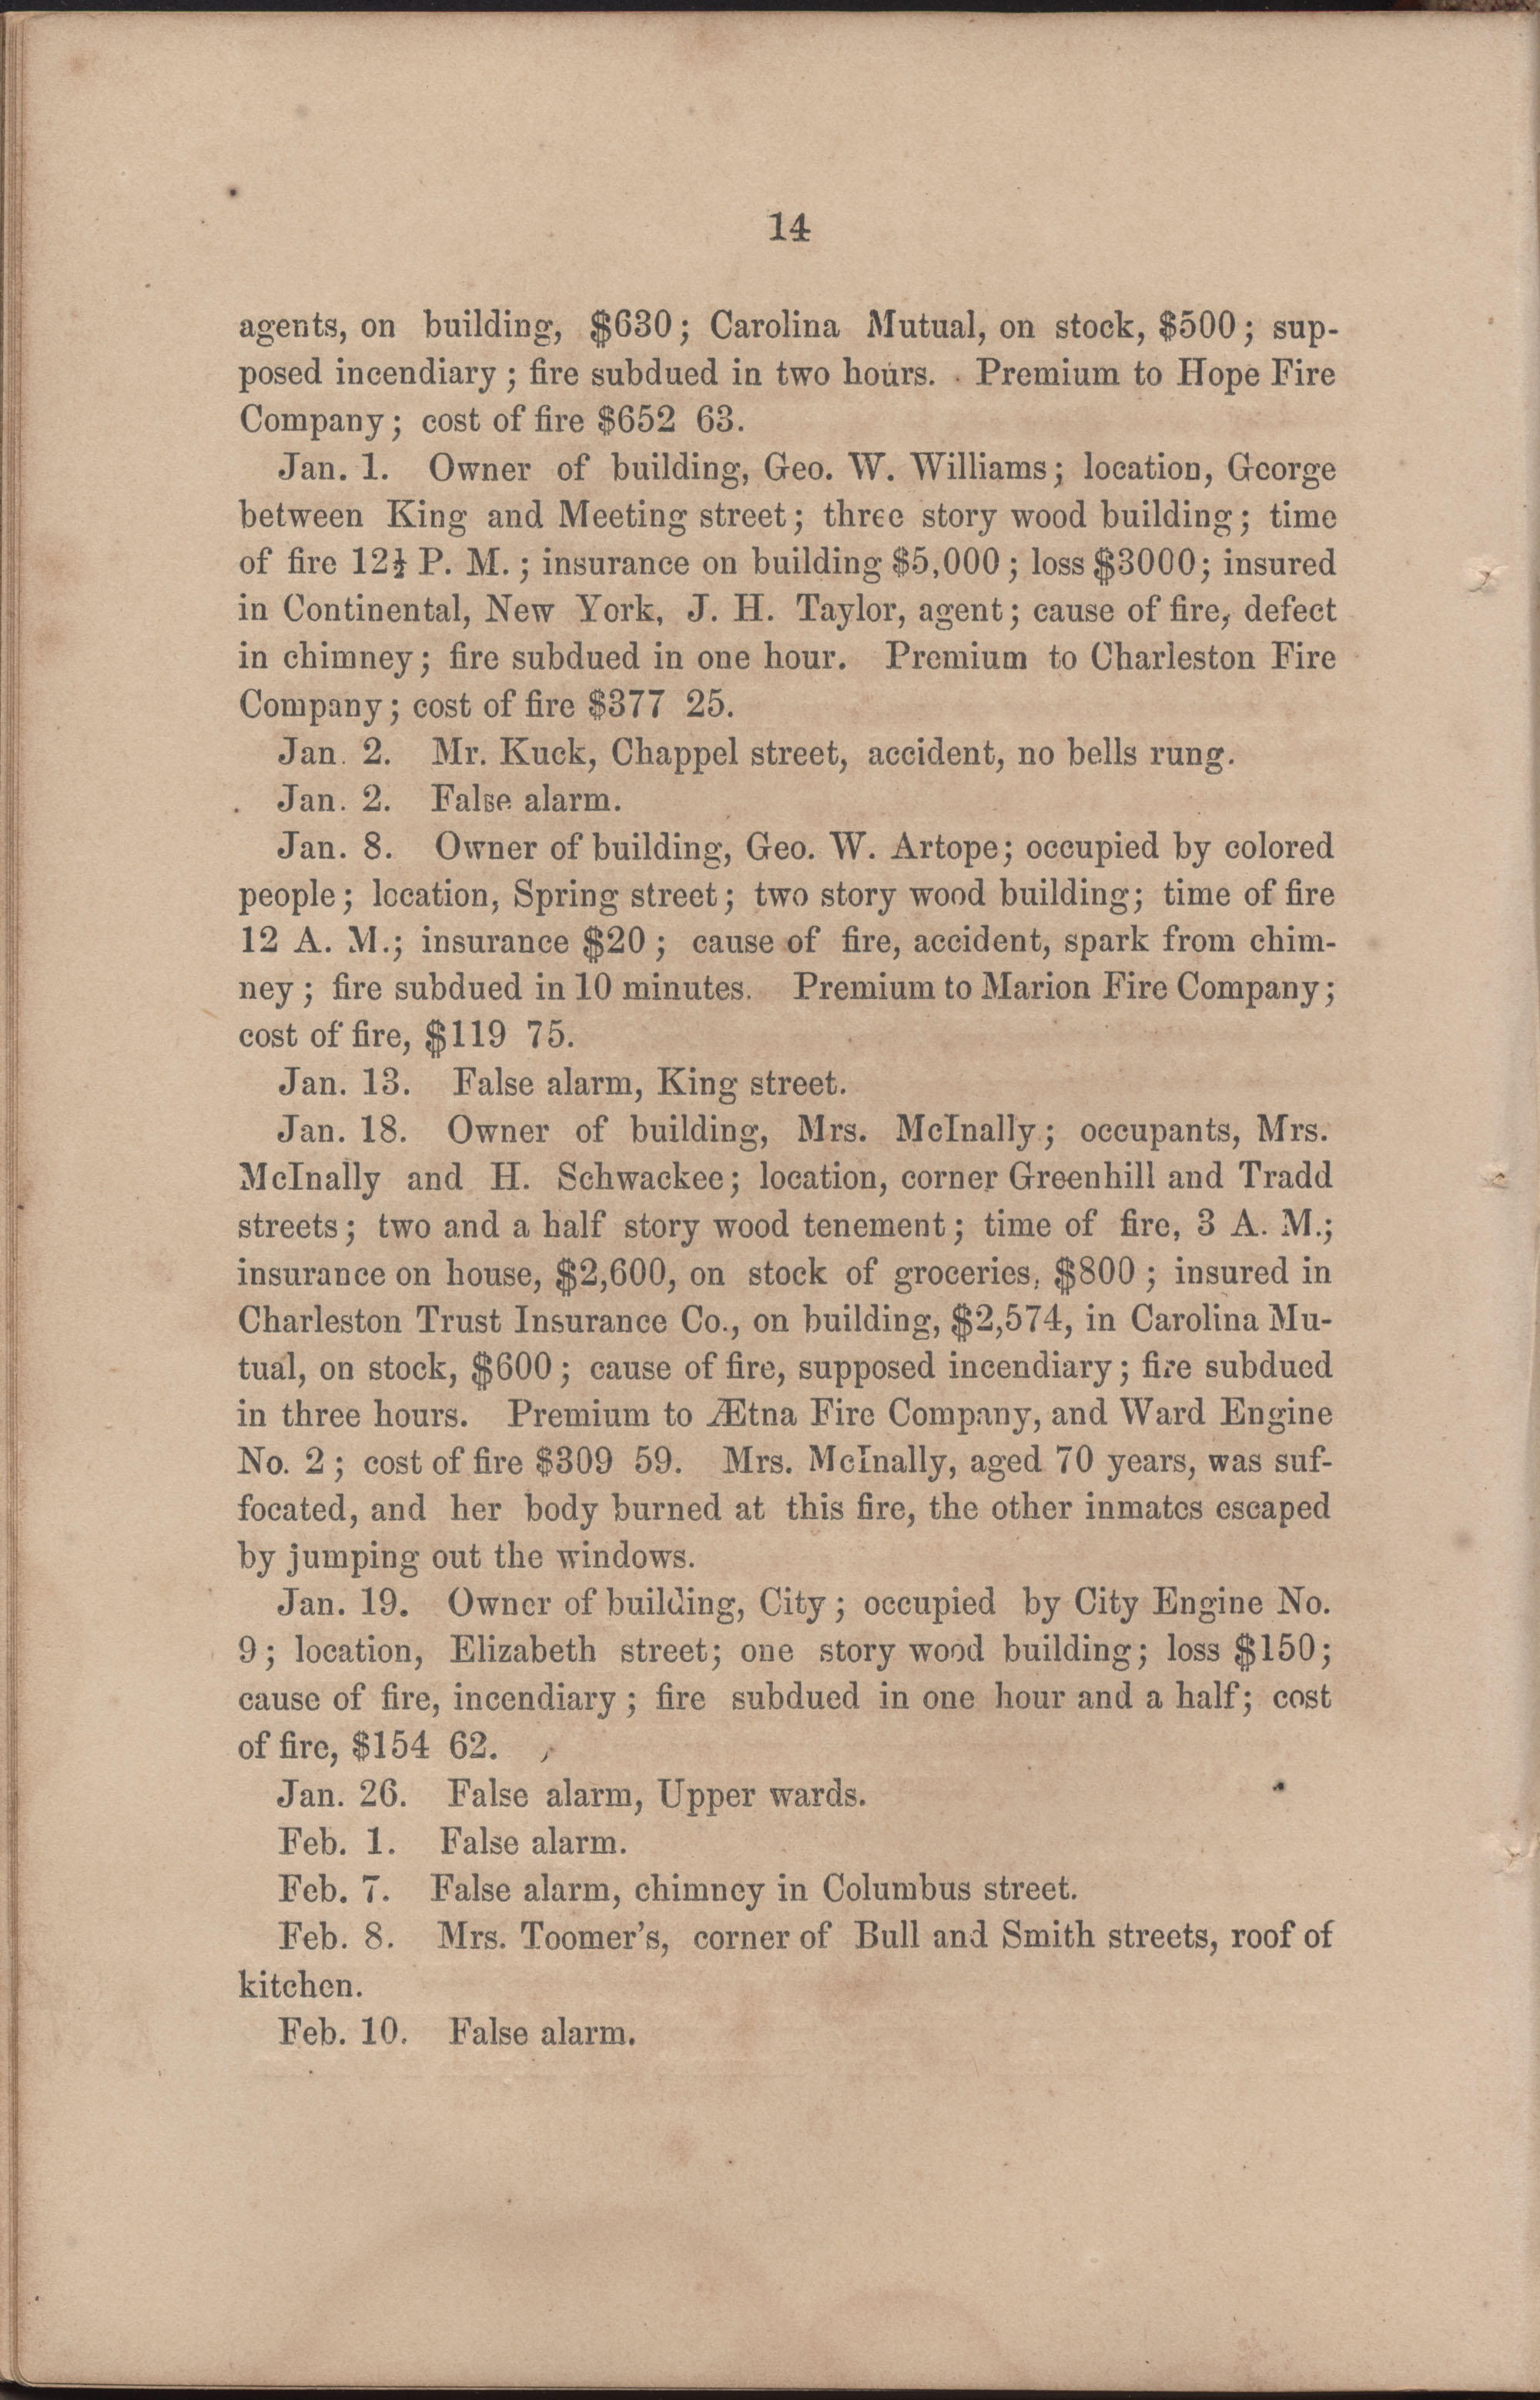 Annual Report of the Chief of the Fire Department of the City of Charleston, page 75